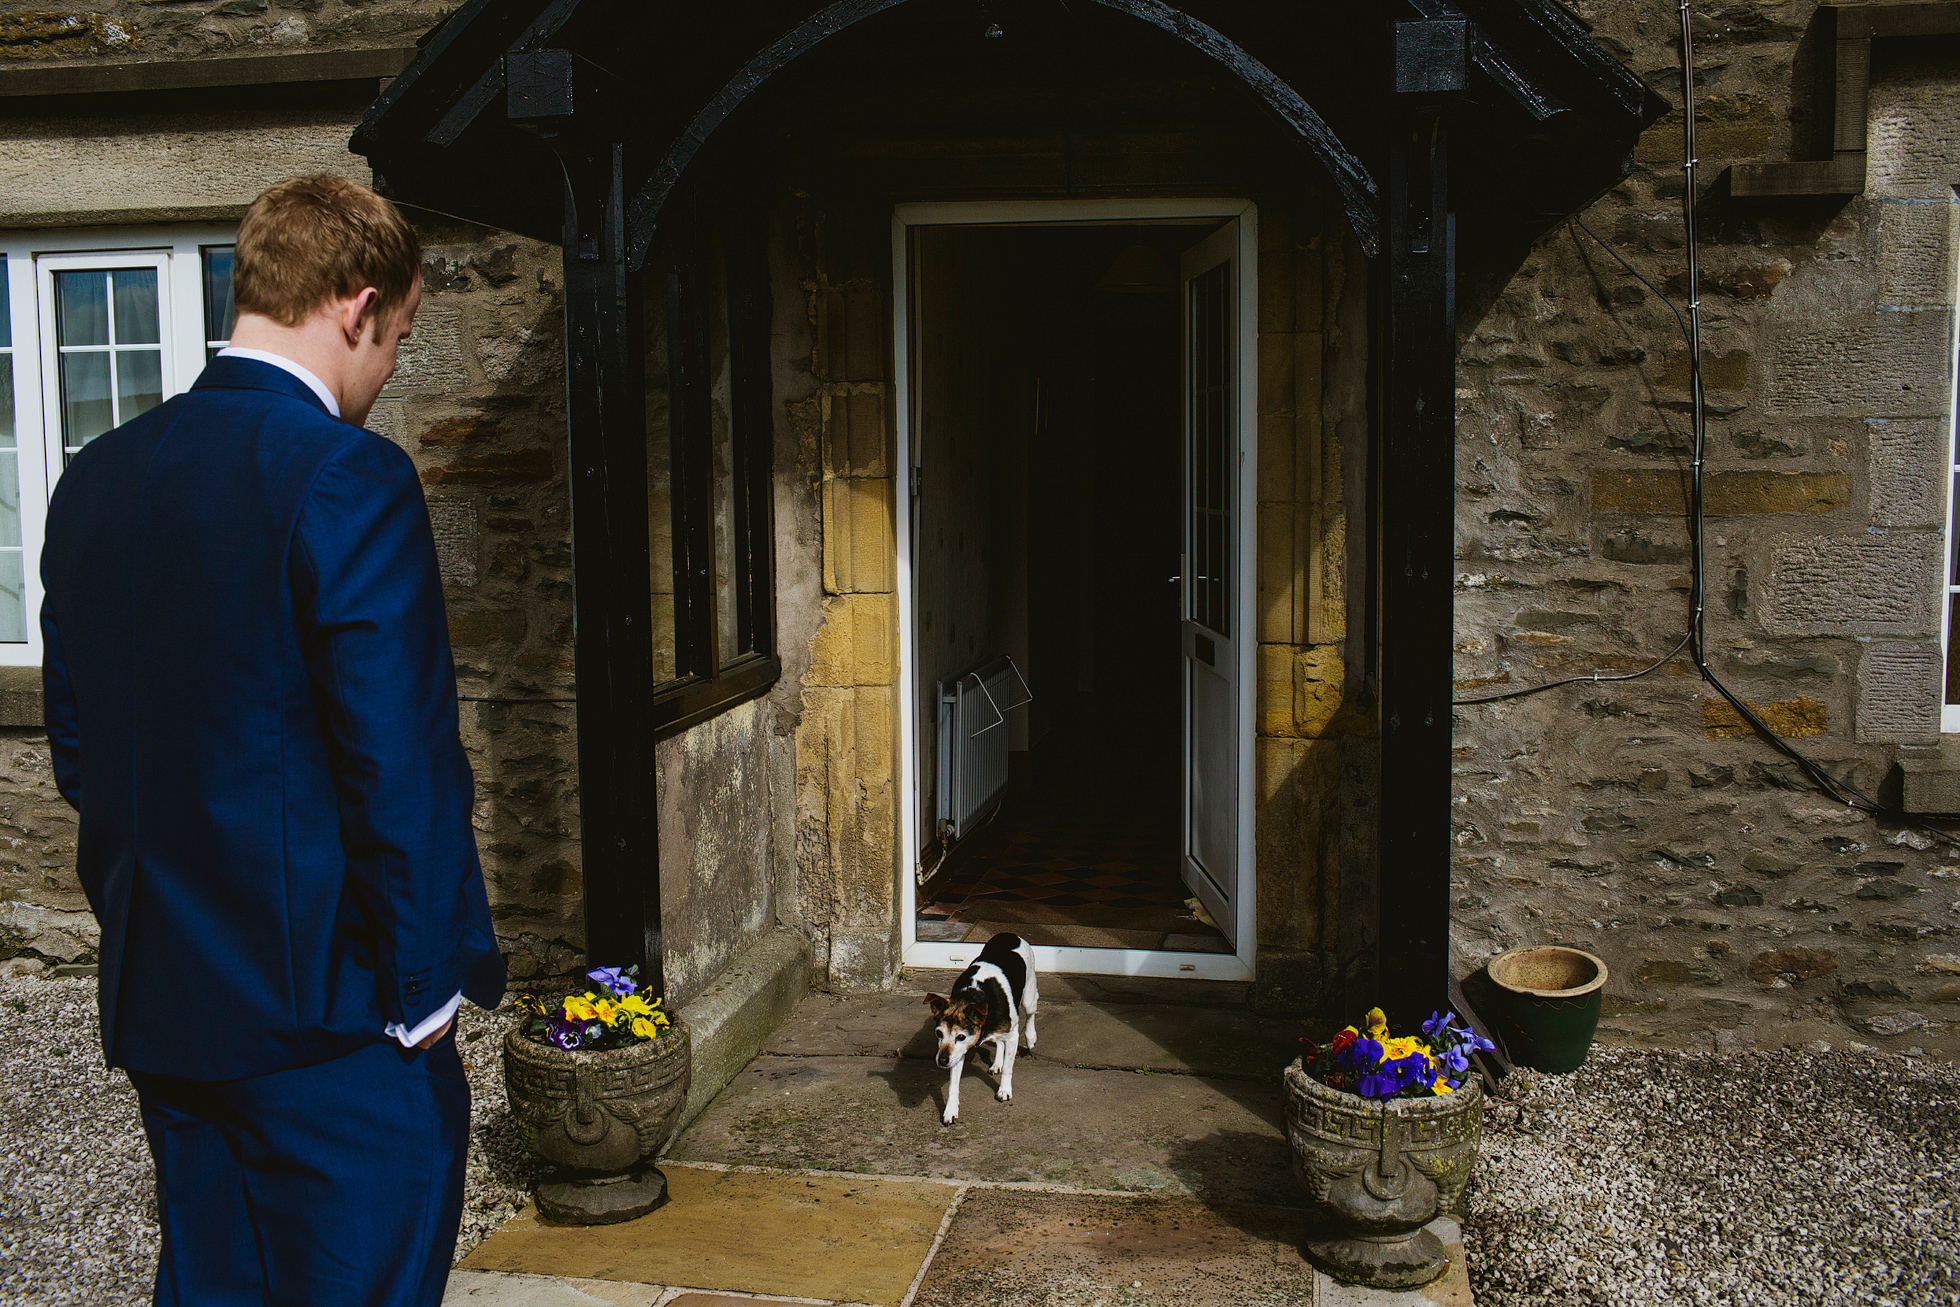 UK Wedding Photography with the Fuji X-T1